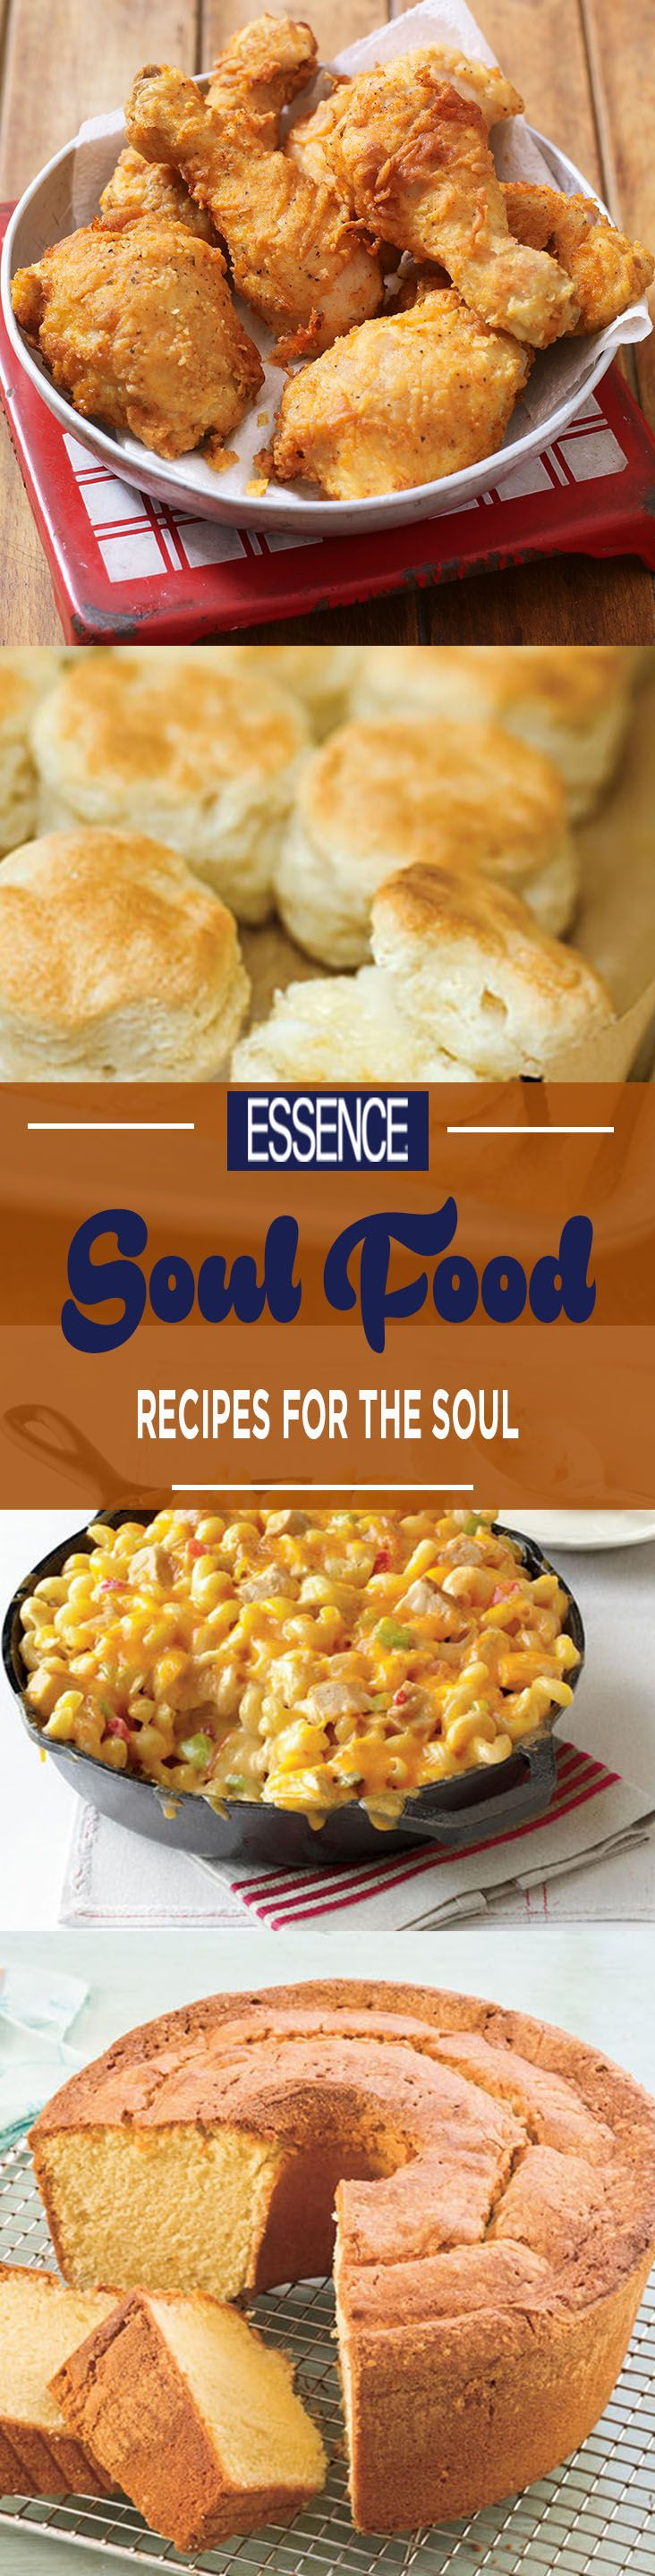 These soul food recipes will leave your mouth watering | Essence.com